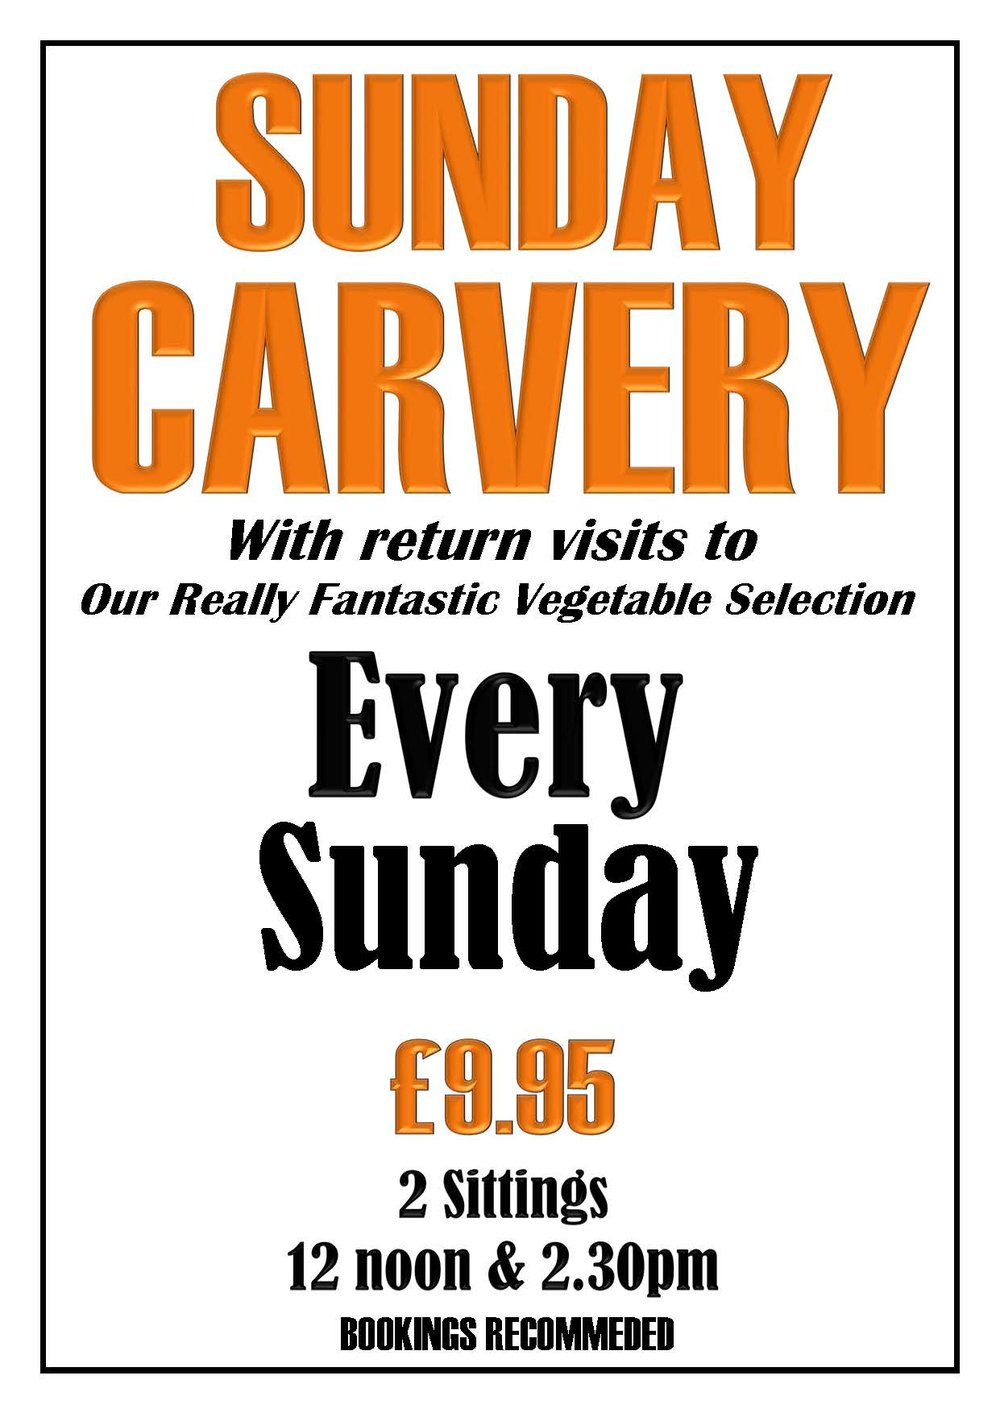 LastOrders! - Our last Sunday Carvery will be Sunday 21st April